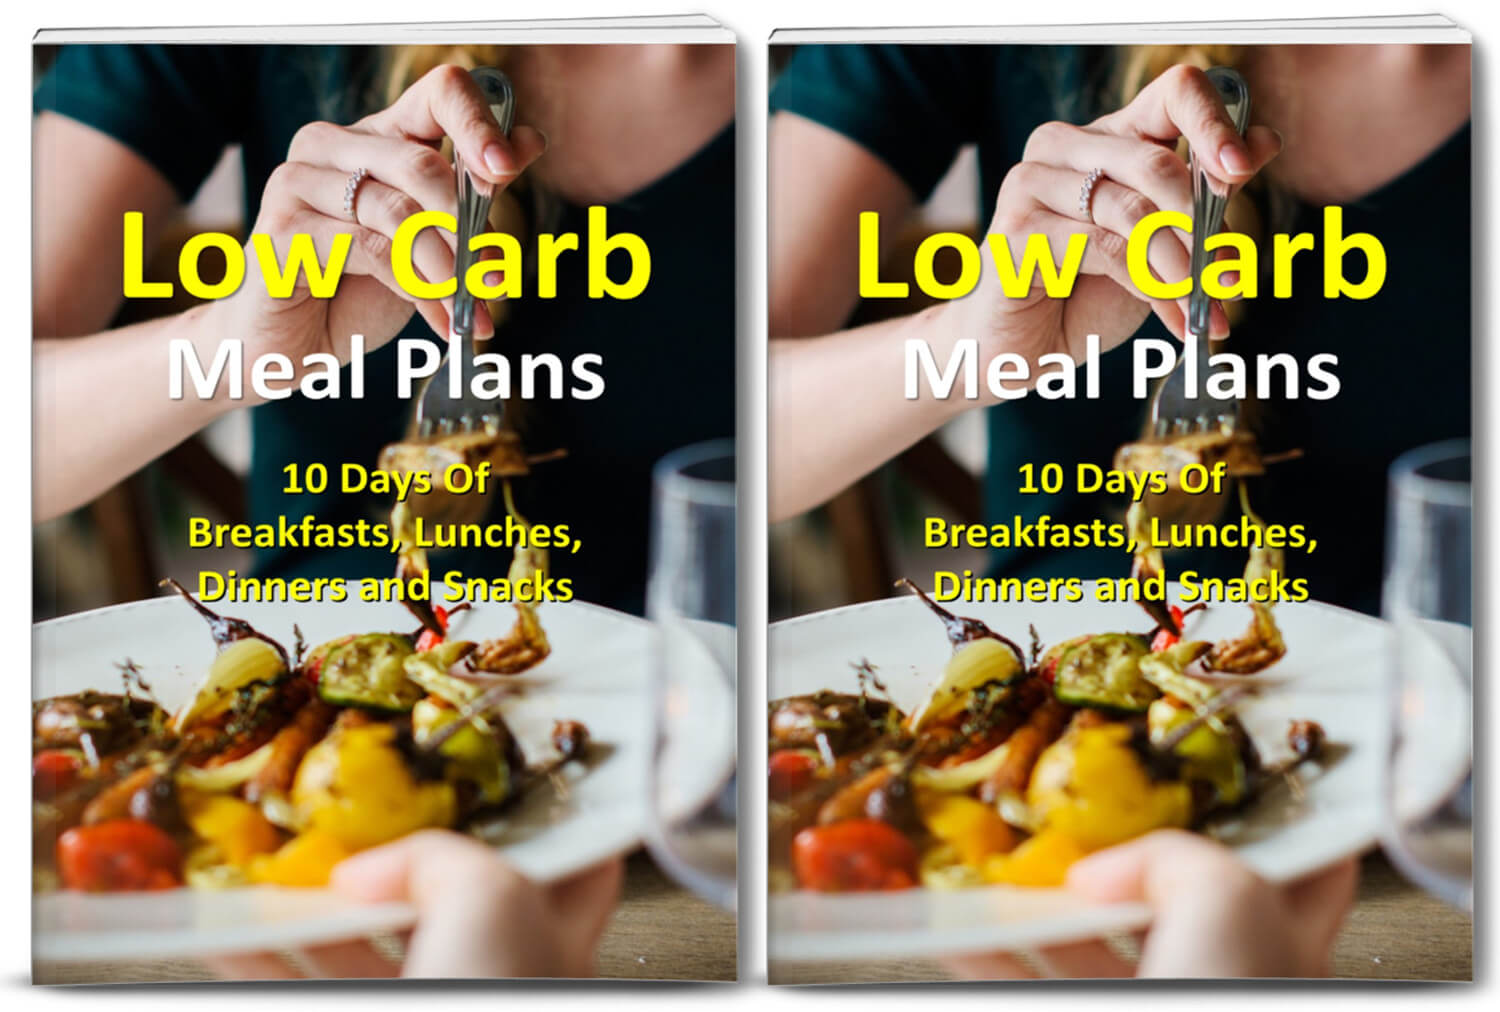 carb-meals report and articles plr